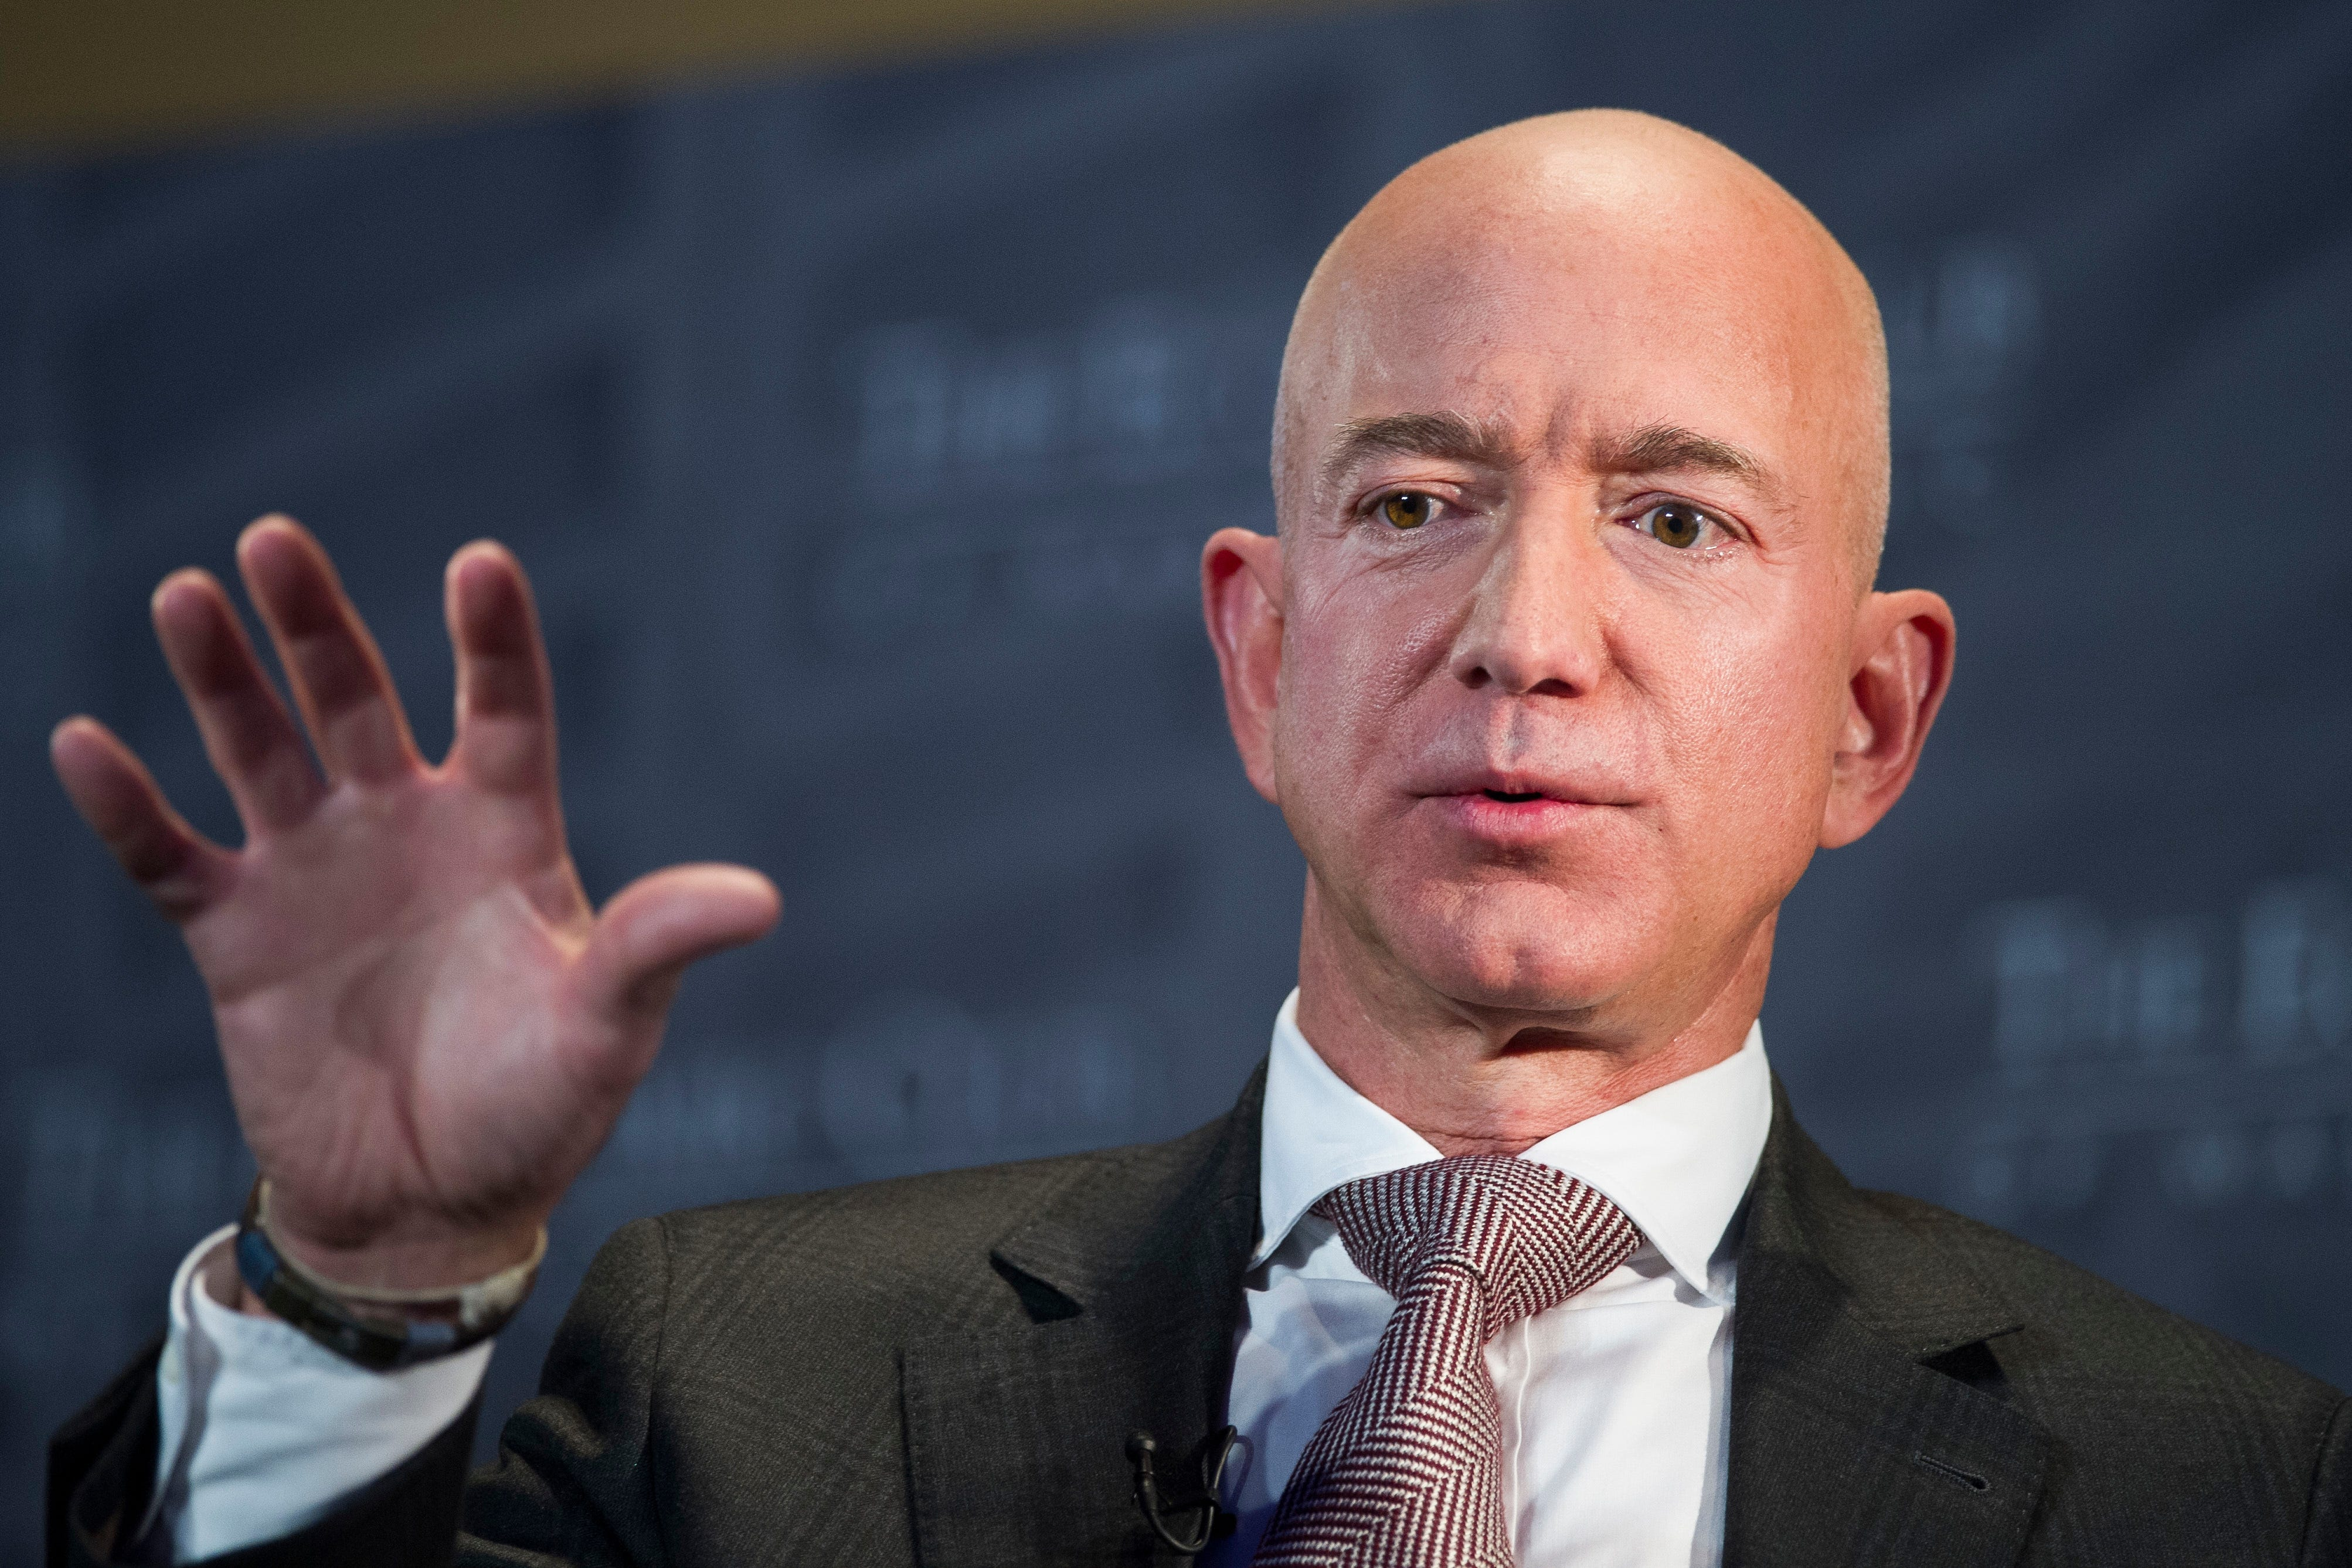 American Media lawyer denies attempt at blackmail, extortion of Amazon CEO Jeff Bezos